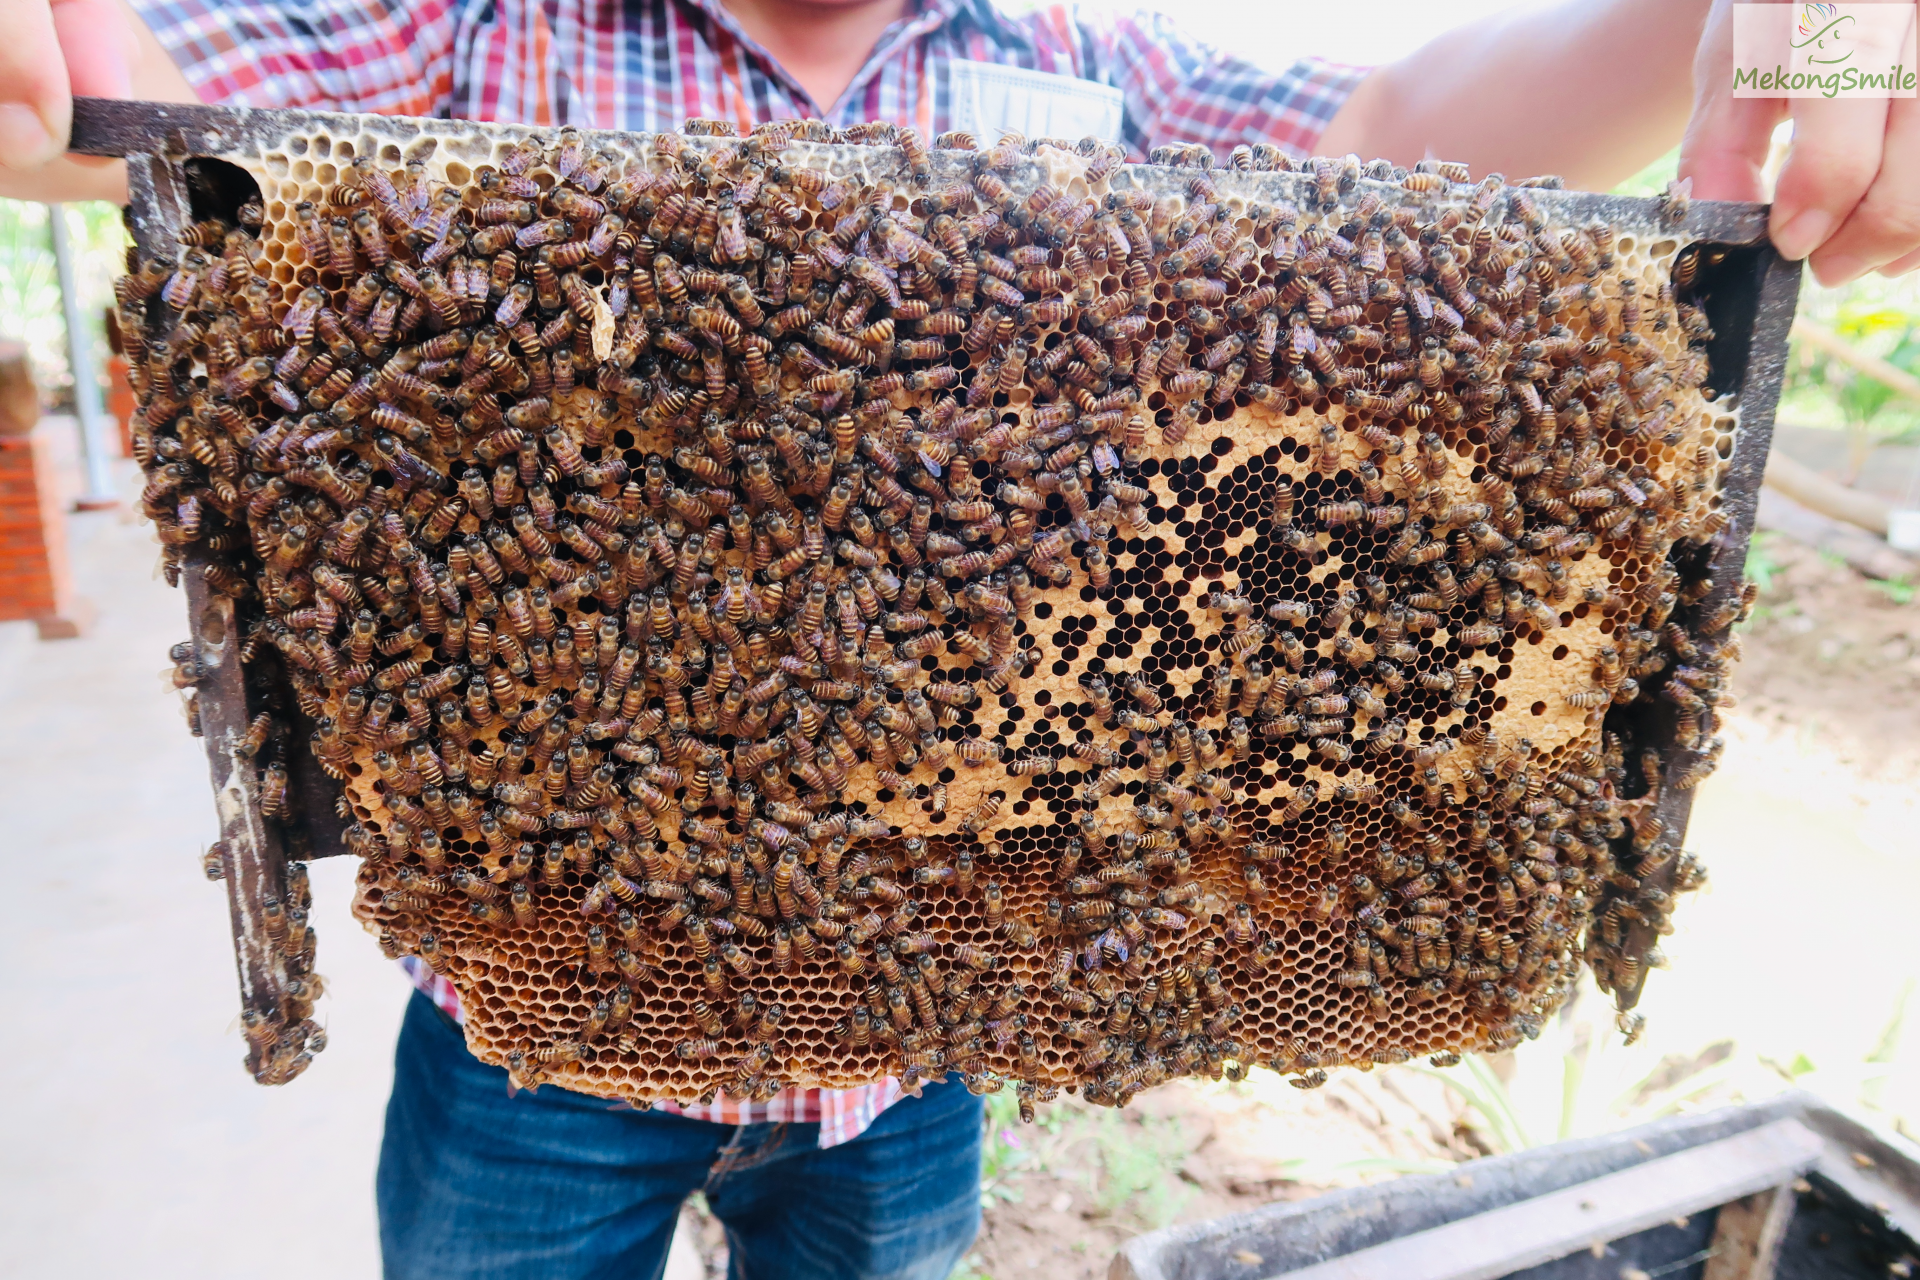 Real honey factory in Ben Tre - the land of coconuts